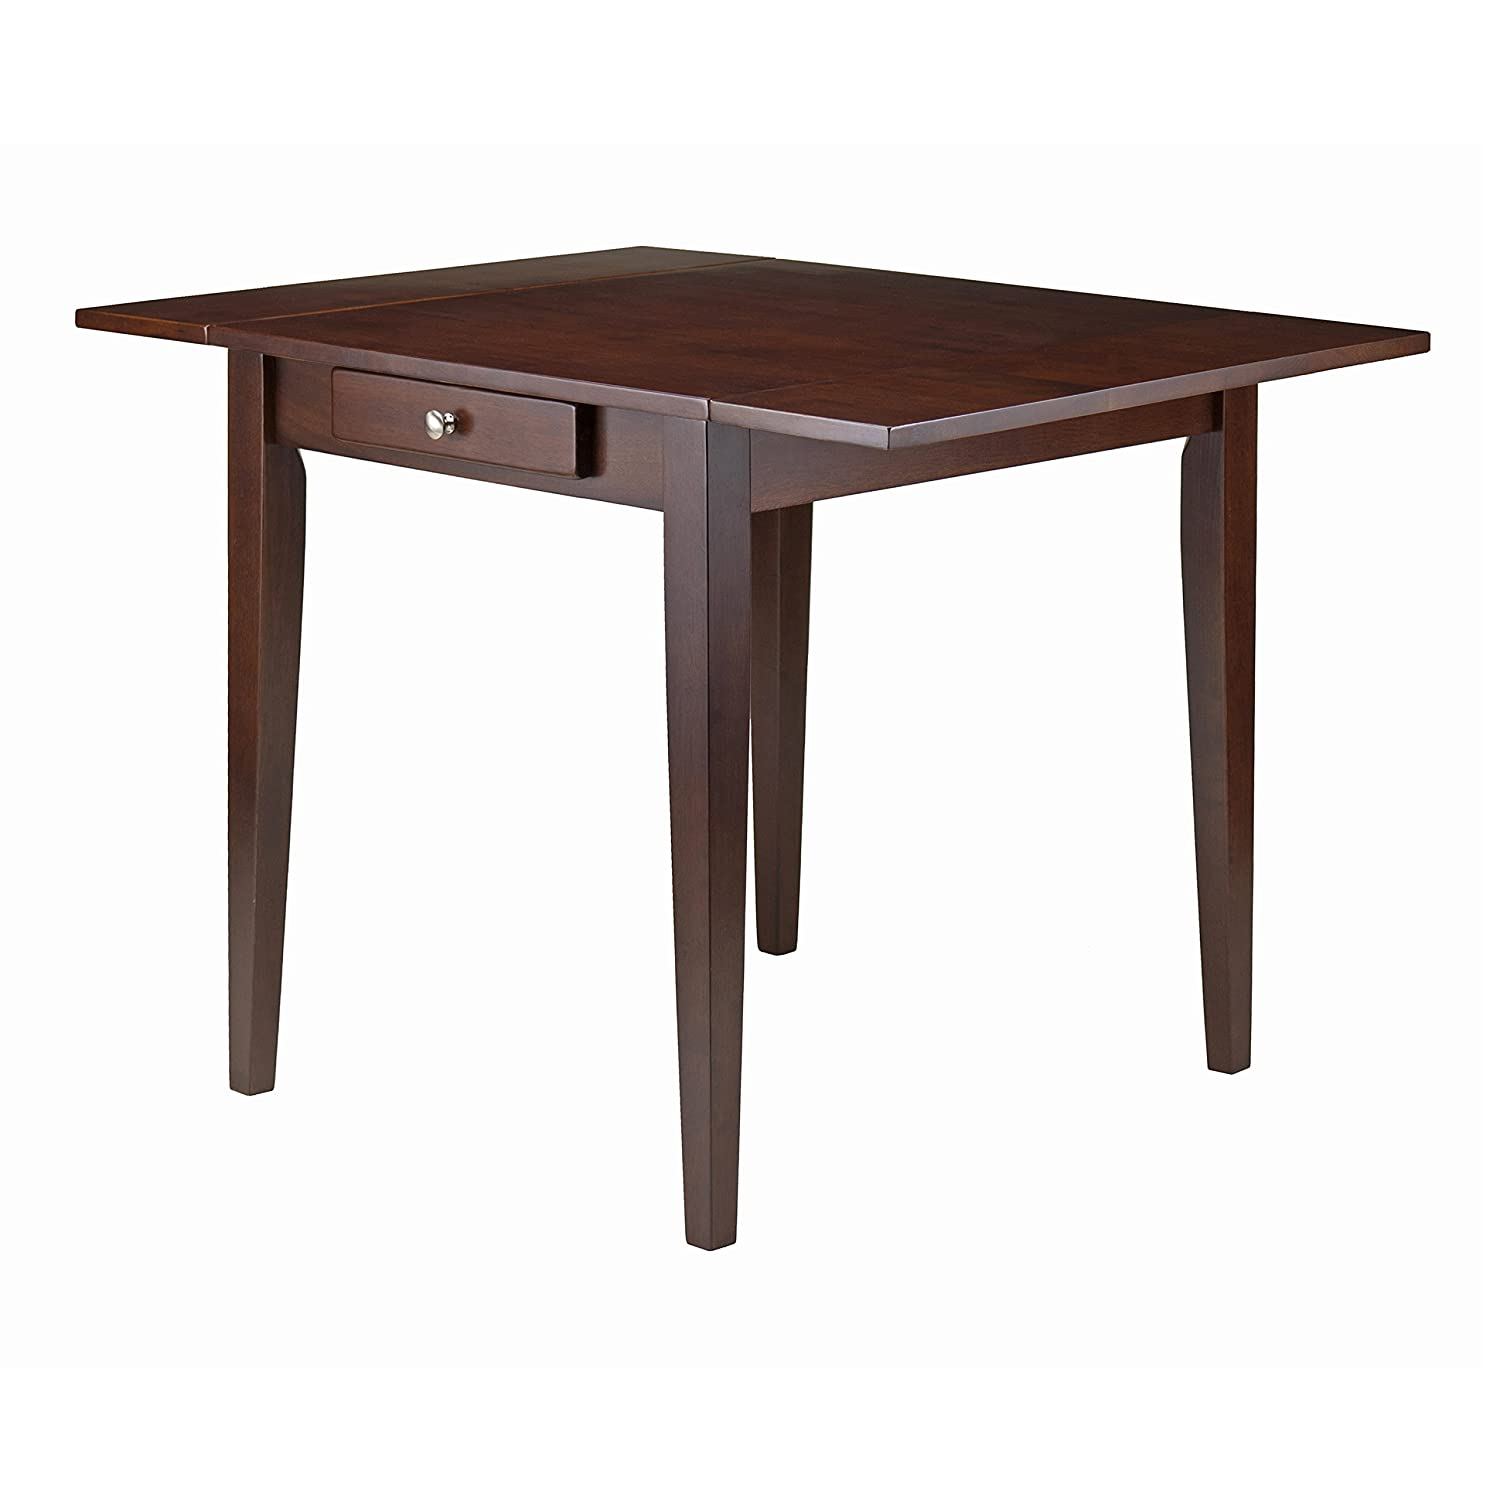 Winsome Wood 94141 Hamilton Dining, Antique Walnut